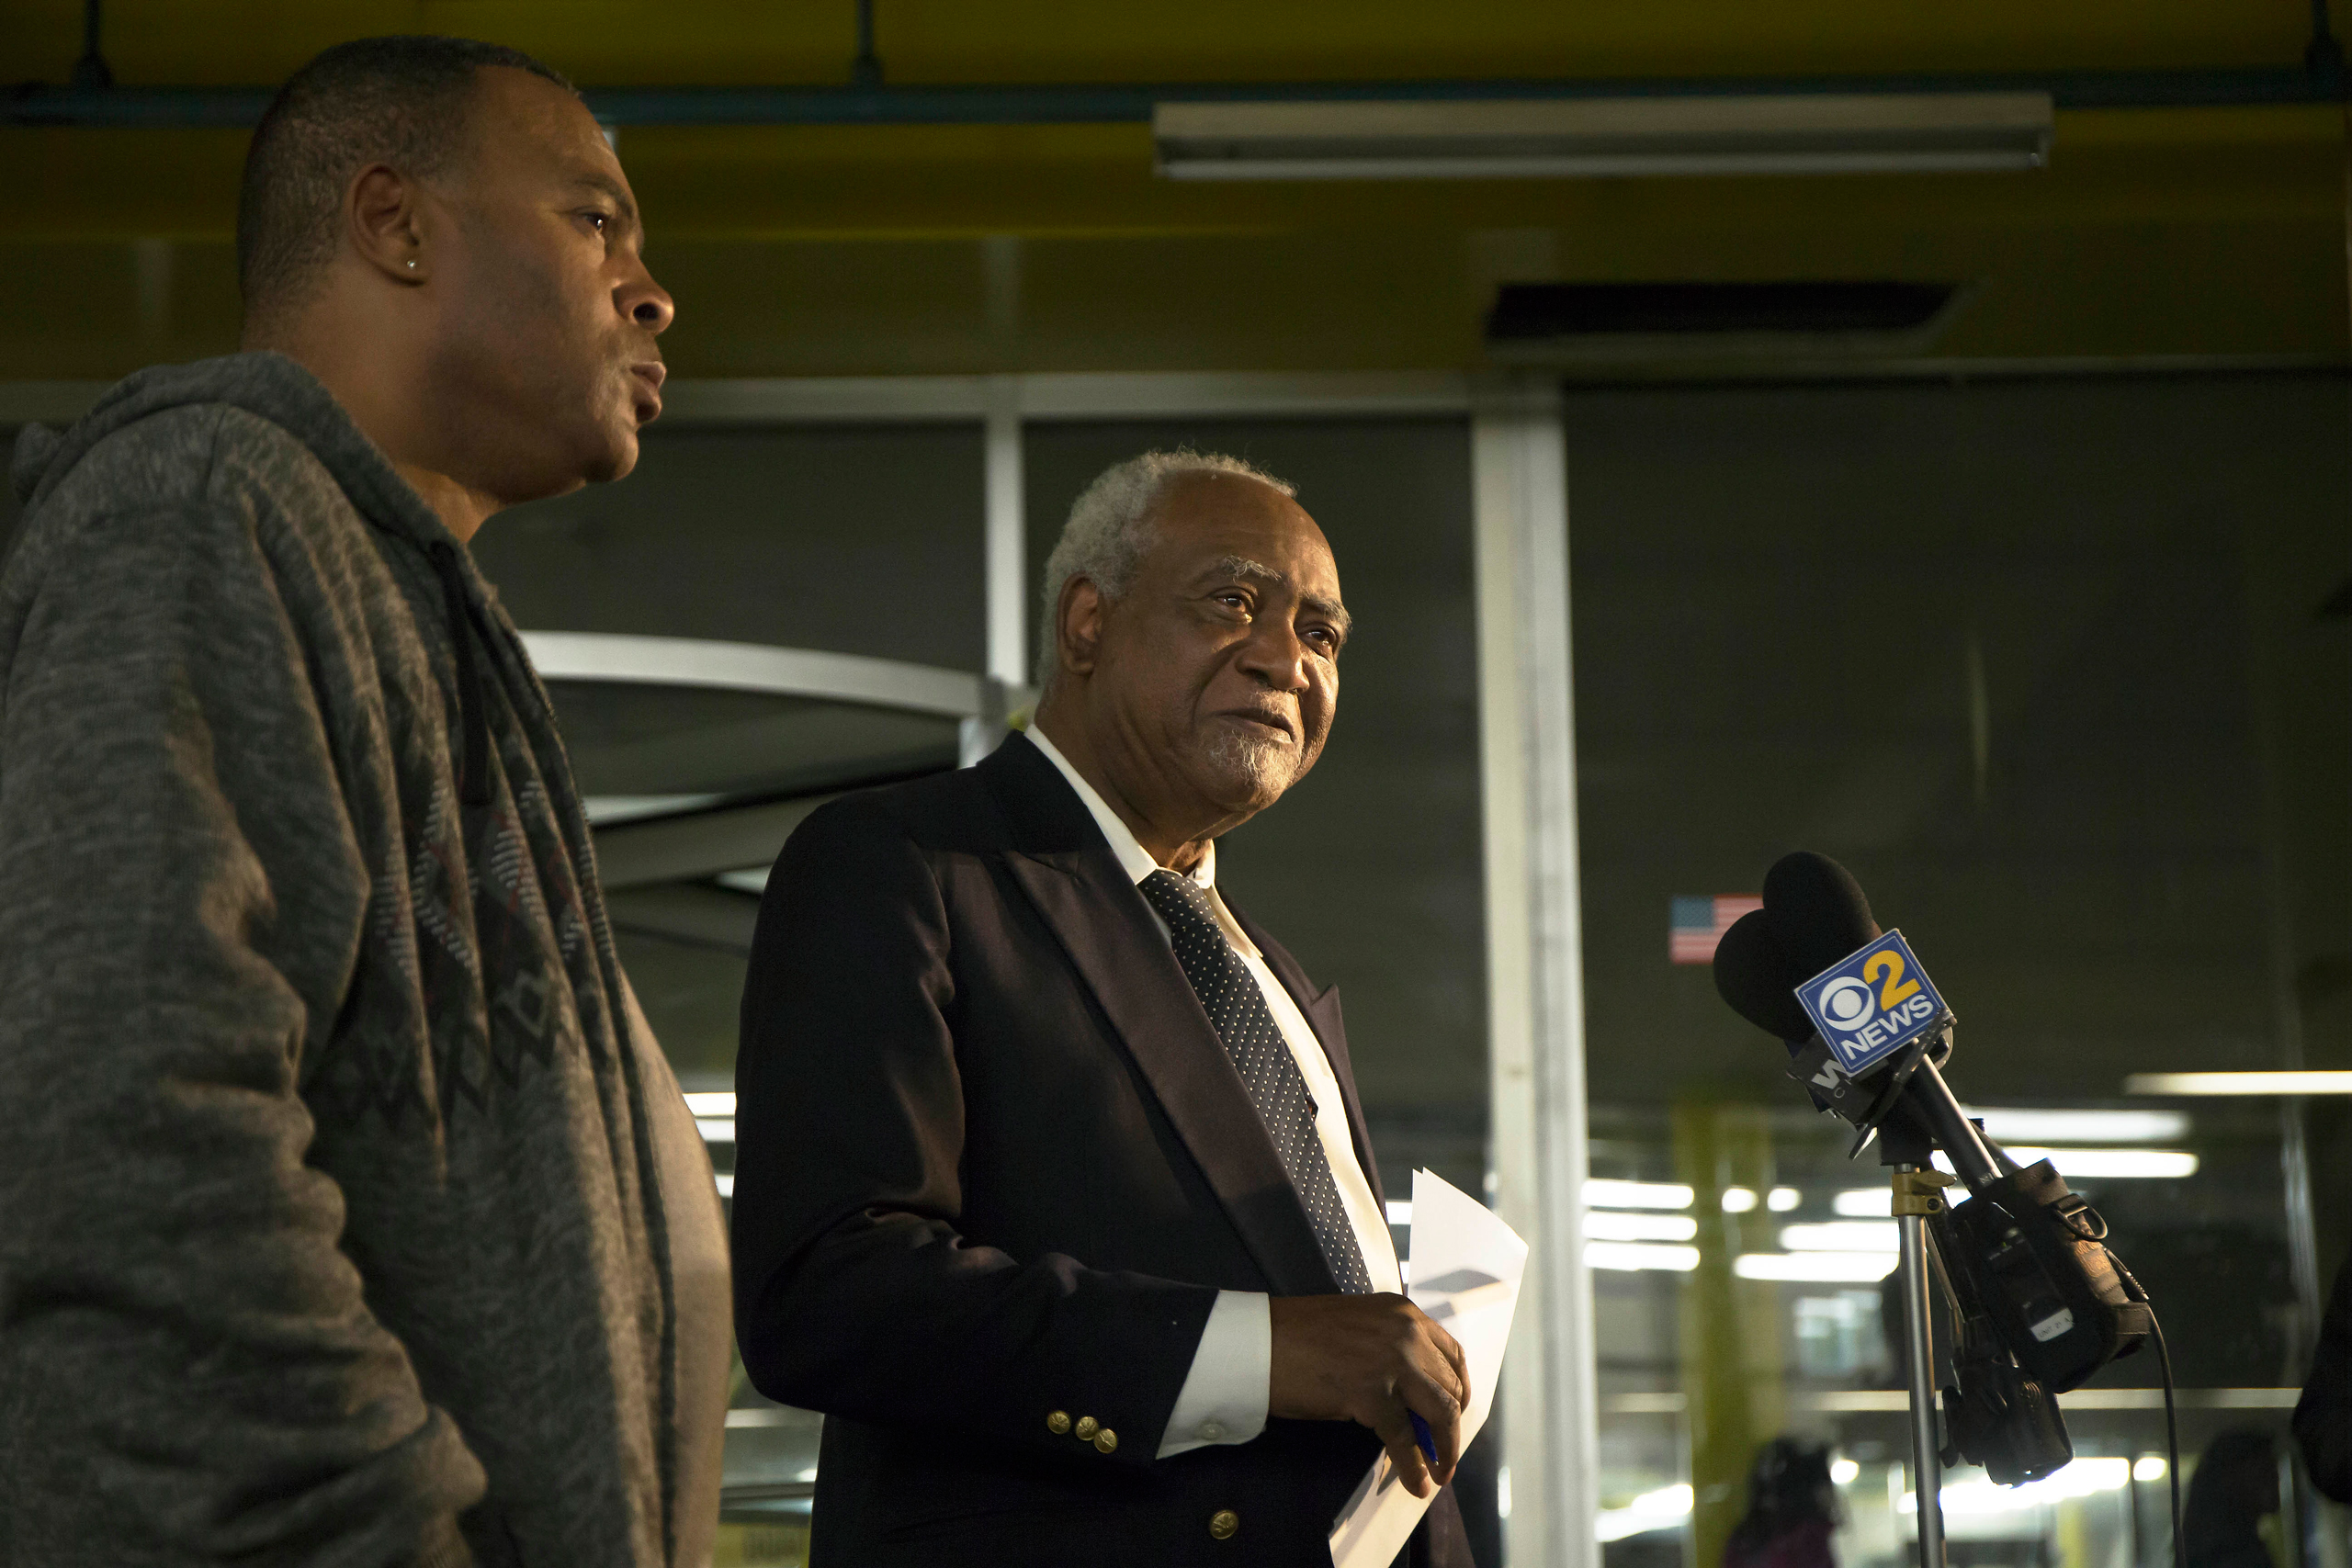 Rep. Danny Davis, D-Ill., center, and his son, Stacey Wilson, give a news conference at the 5th District police department in the Englewood neighborhood of Chicago on Nov. 18, 2016.